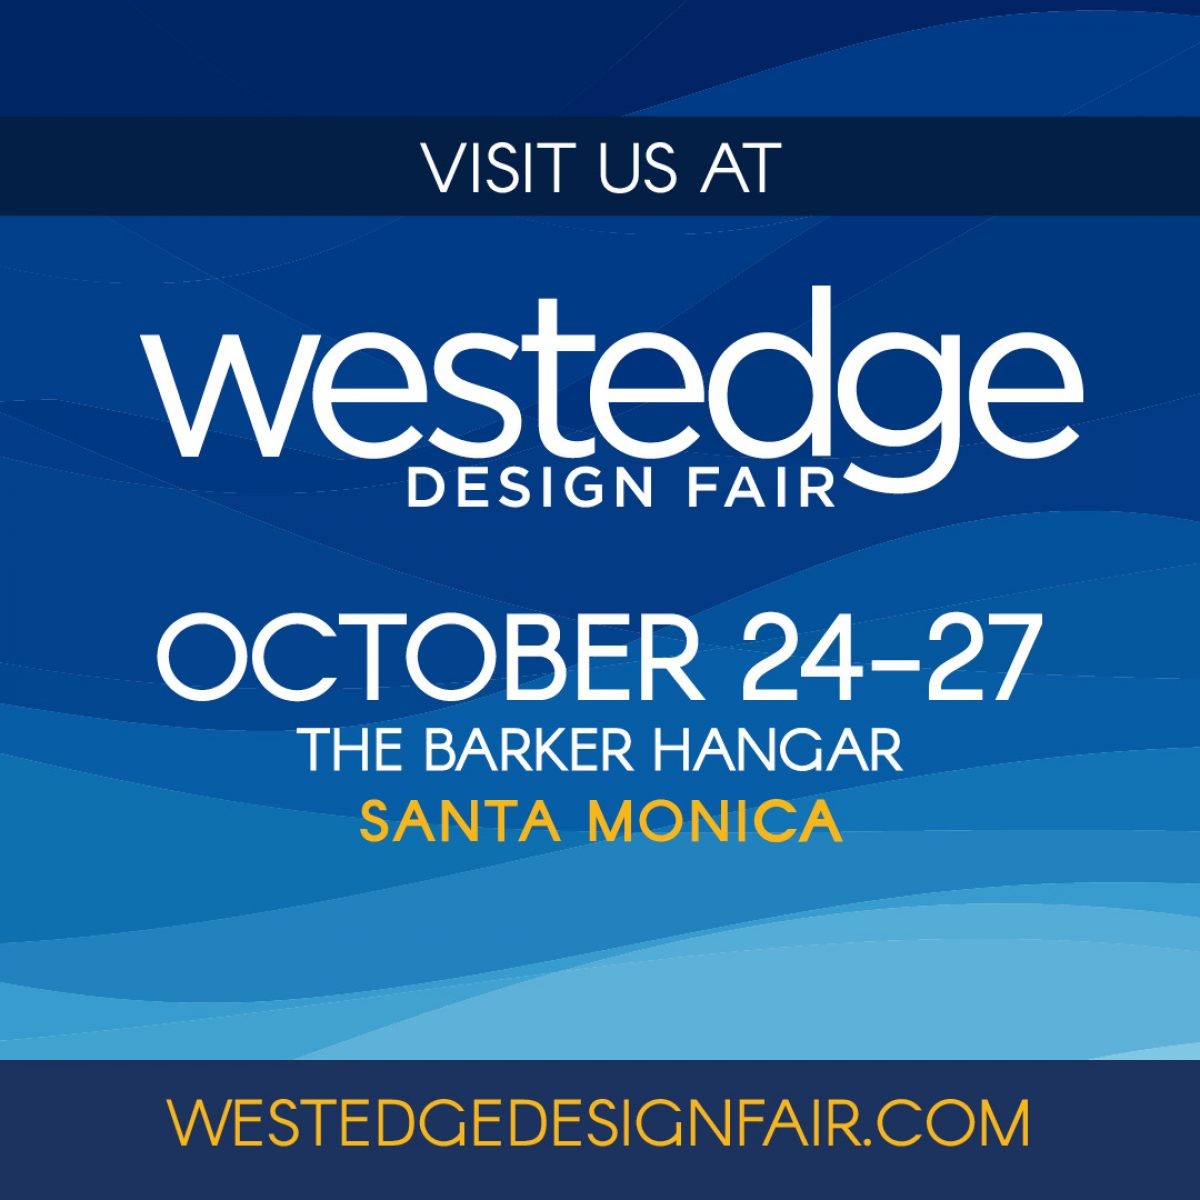 Visit Us at the WestEdge Design Fair